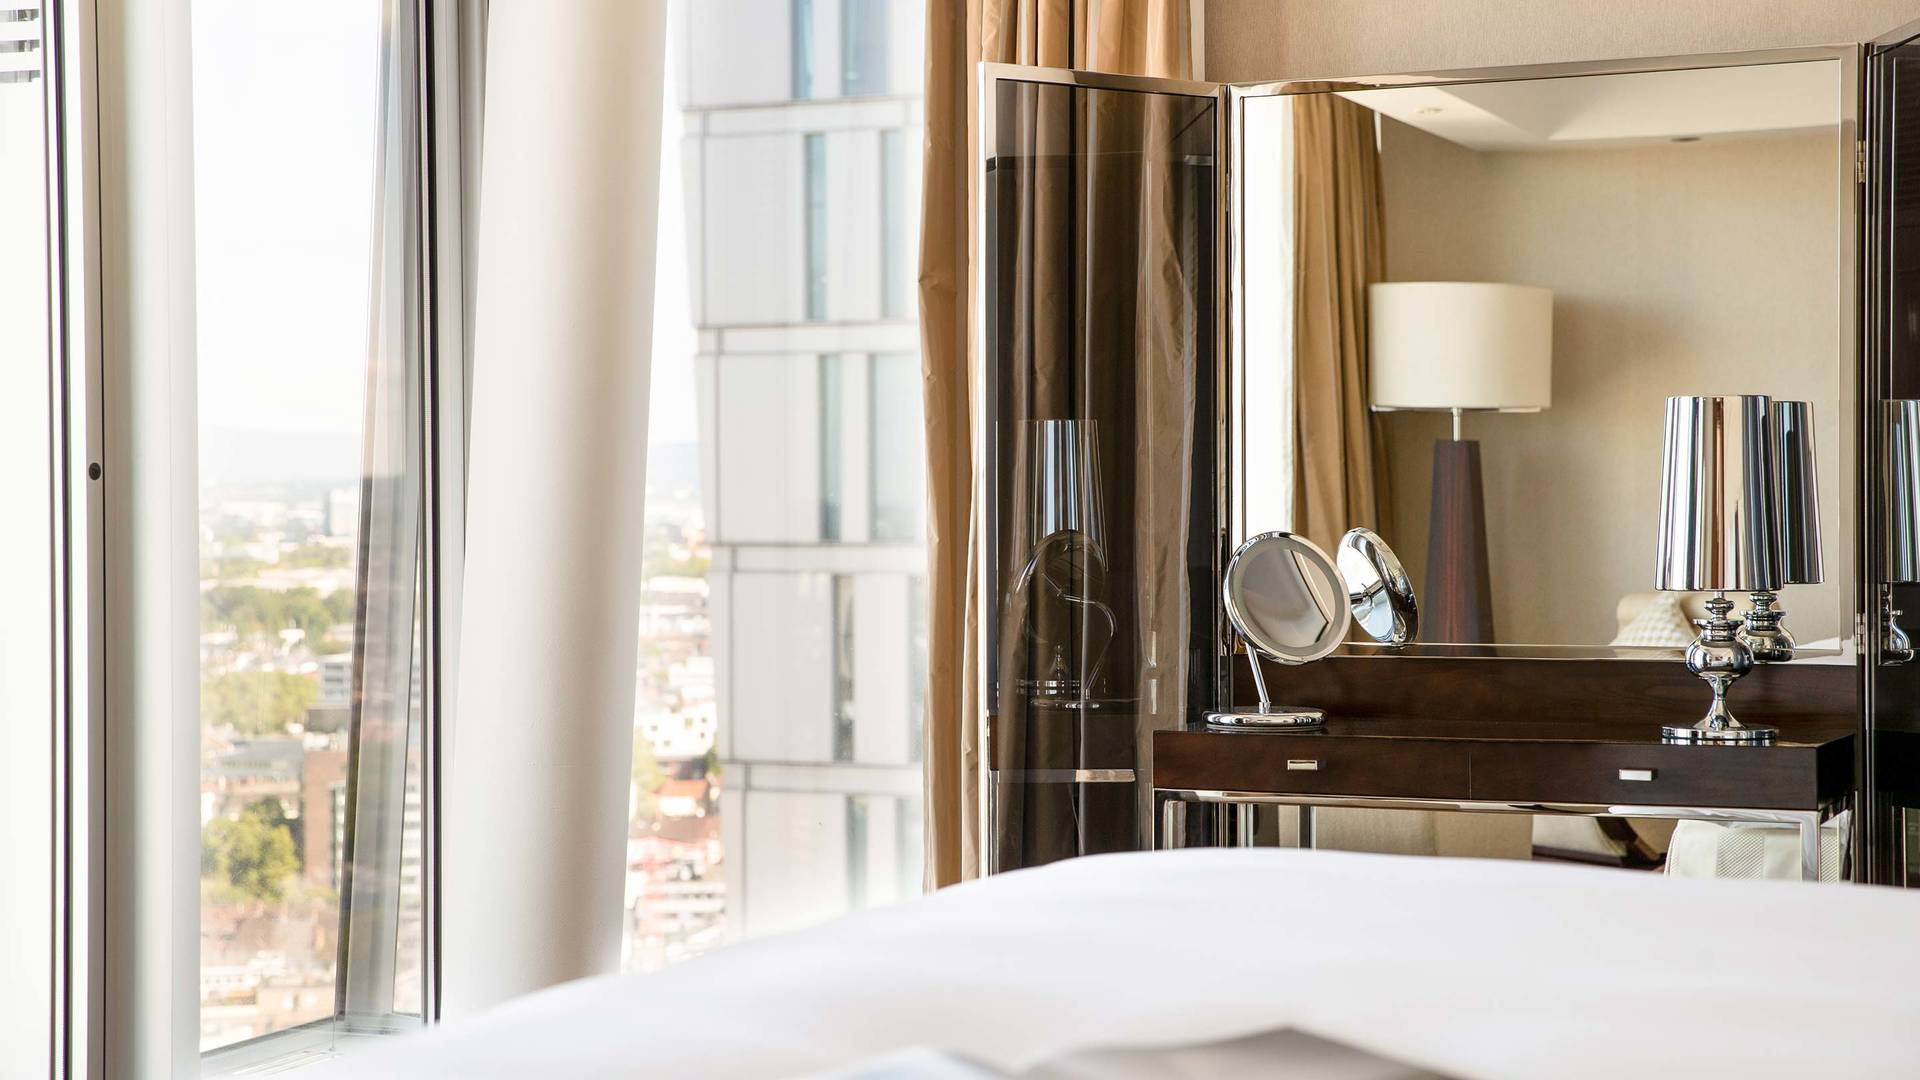 Jumeirah Frankfurt Presidential suite Bedroom 1_16-9